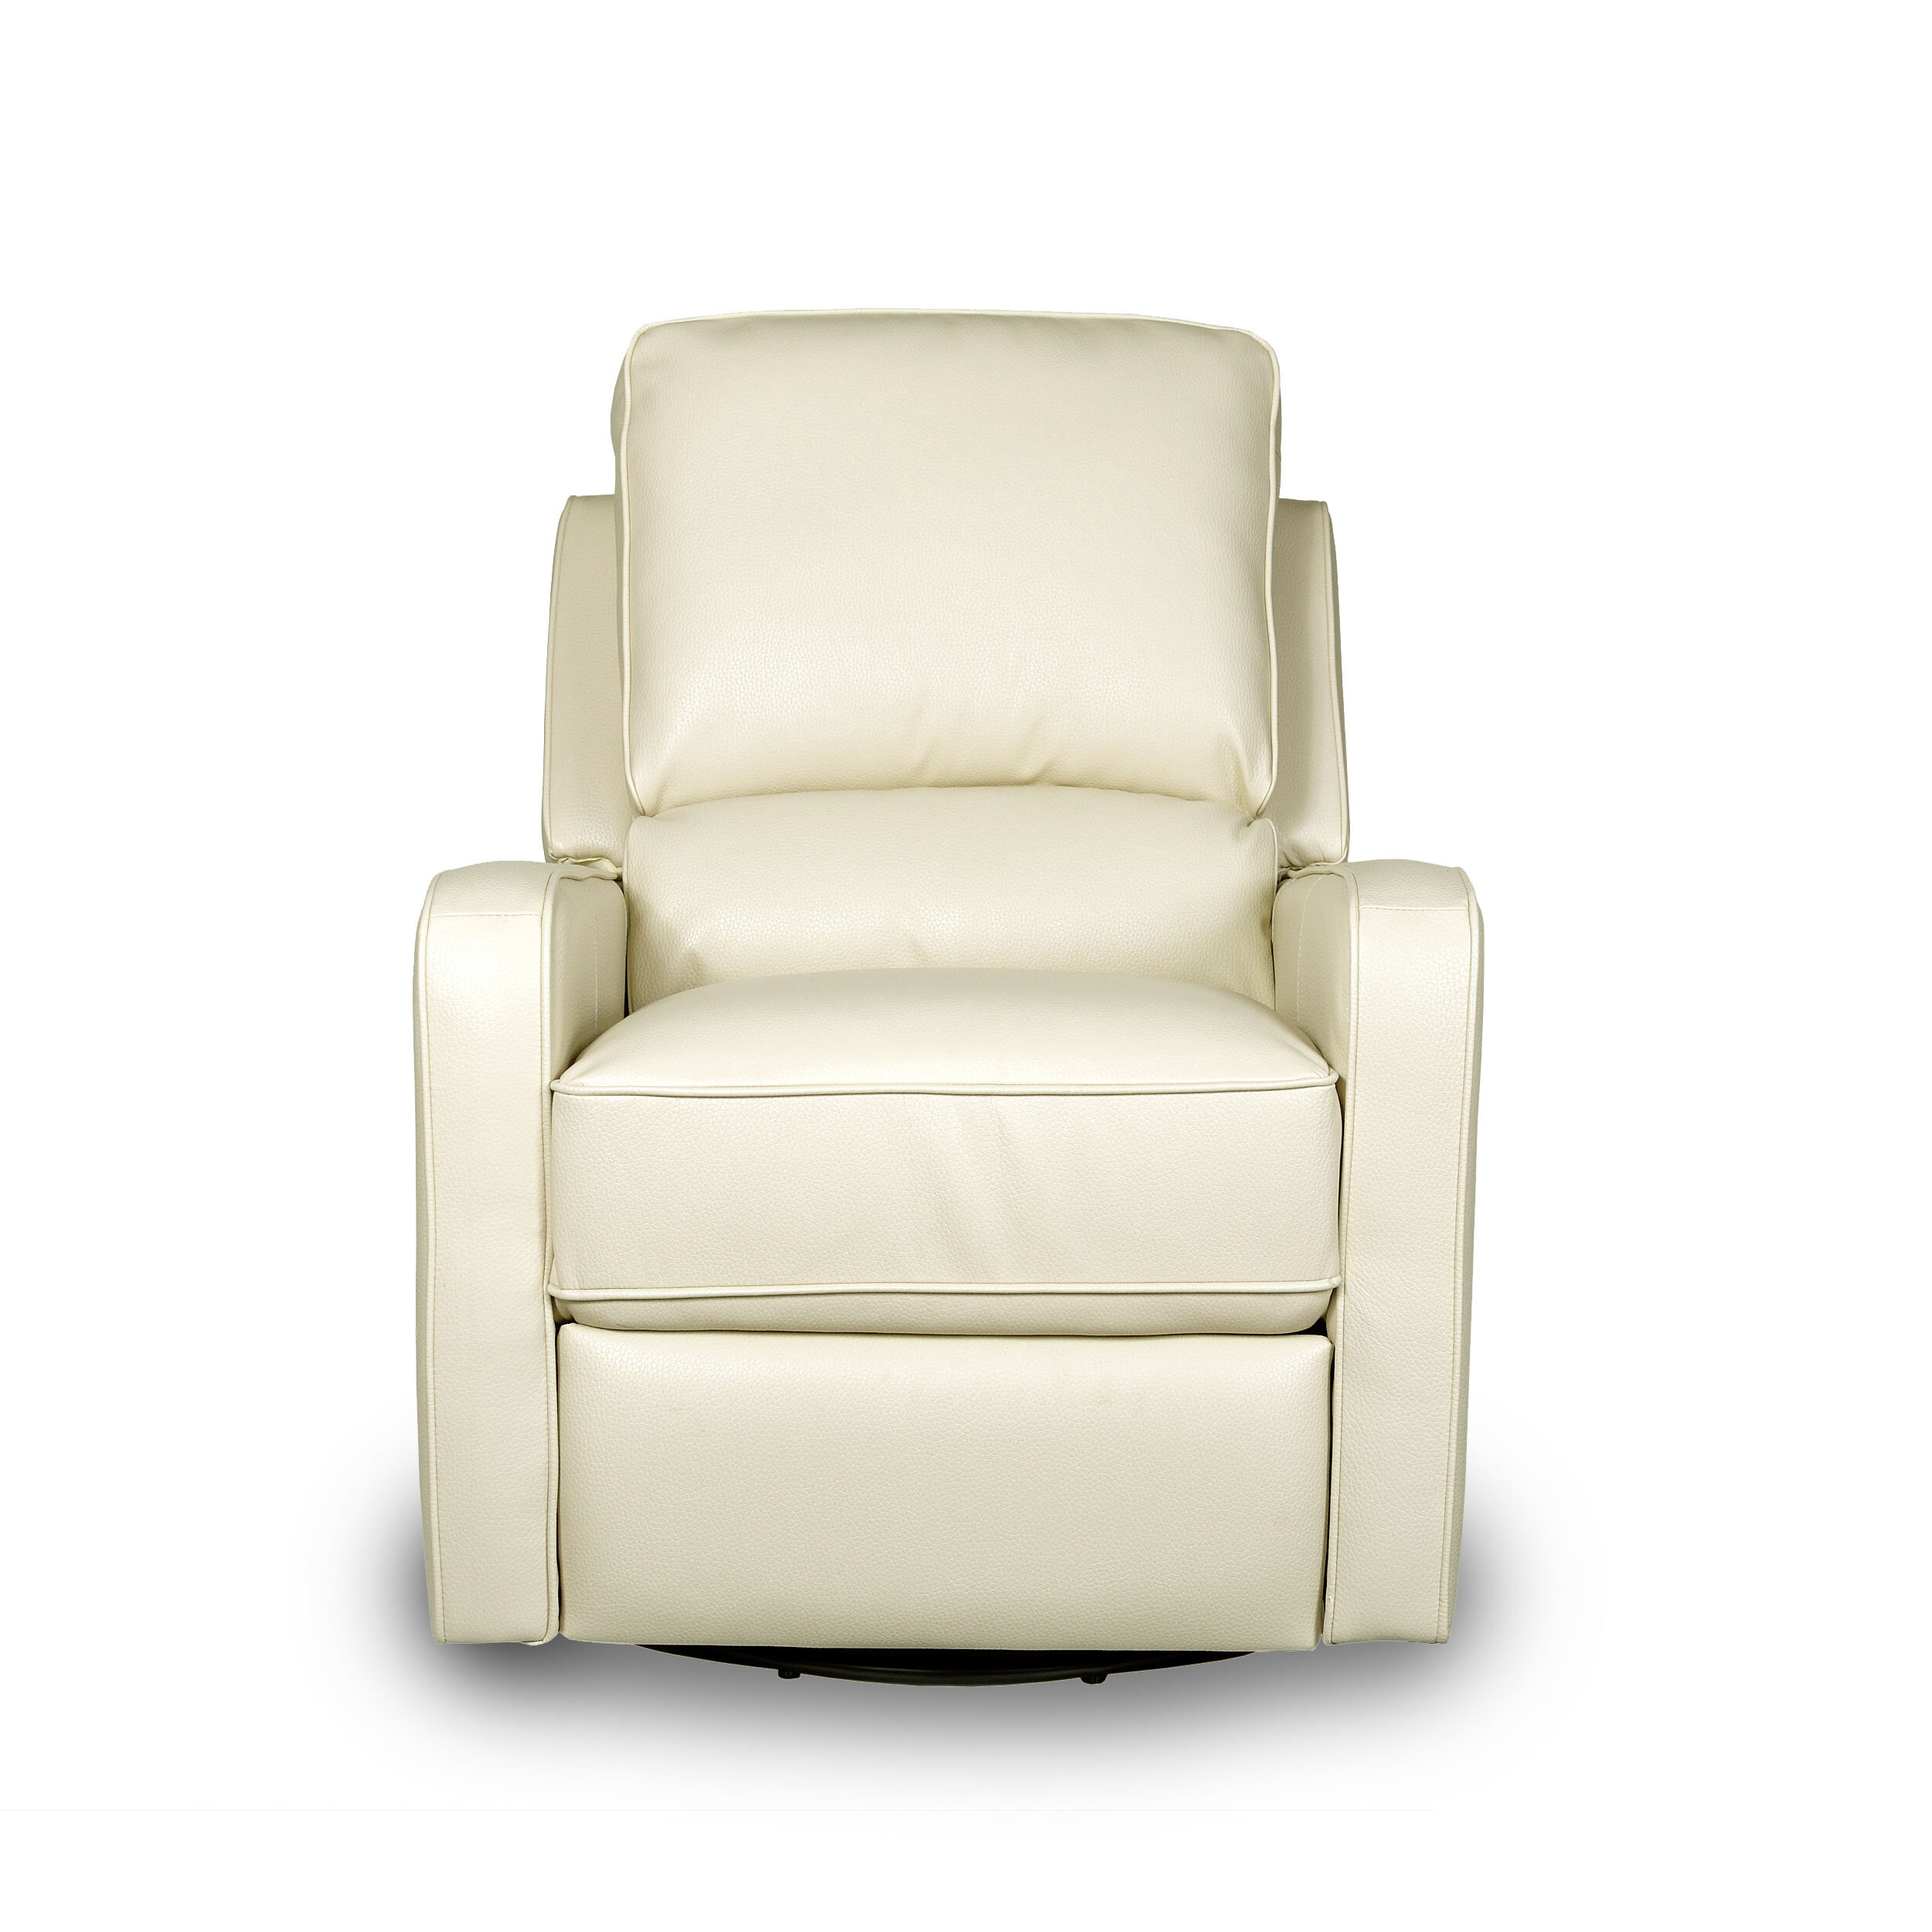 Perth Manual Swivel Glider Recliner. by Opulence Home